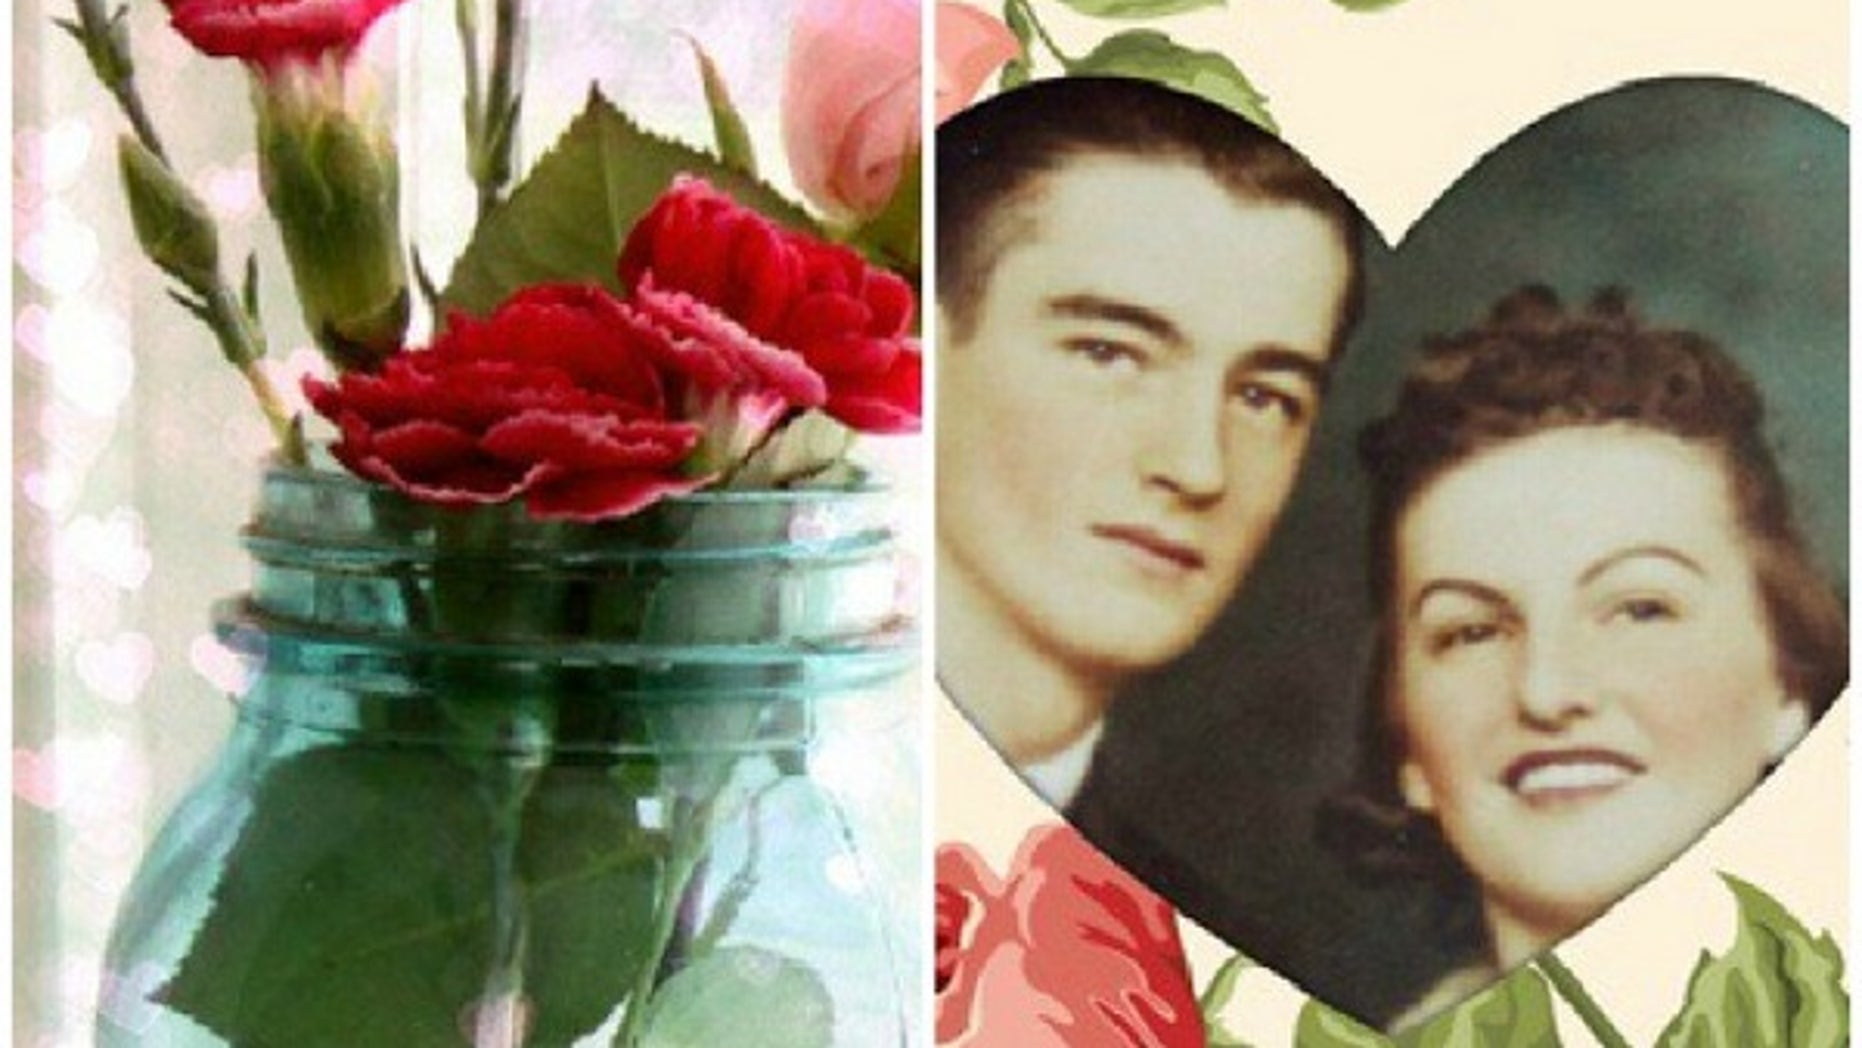 Valentine special effects from PicMonkey: Bokeh heart lights (left) and photo cutouts (right)